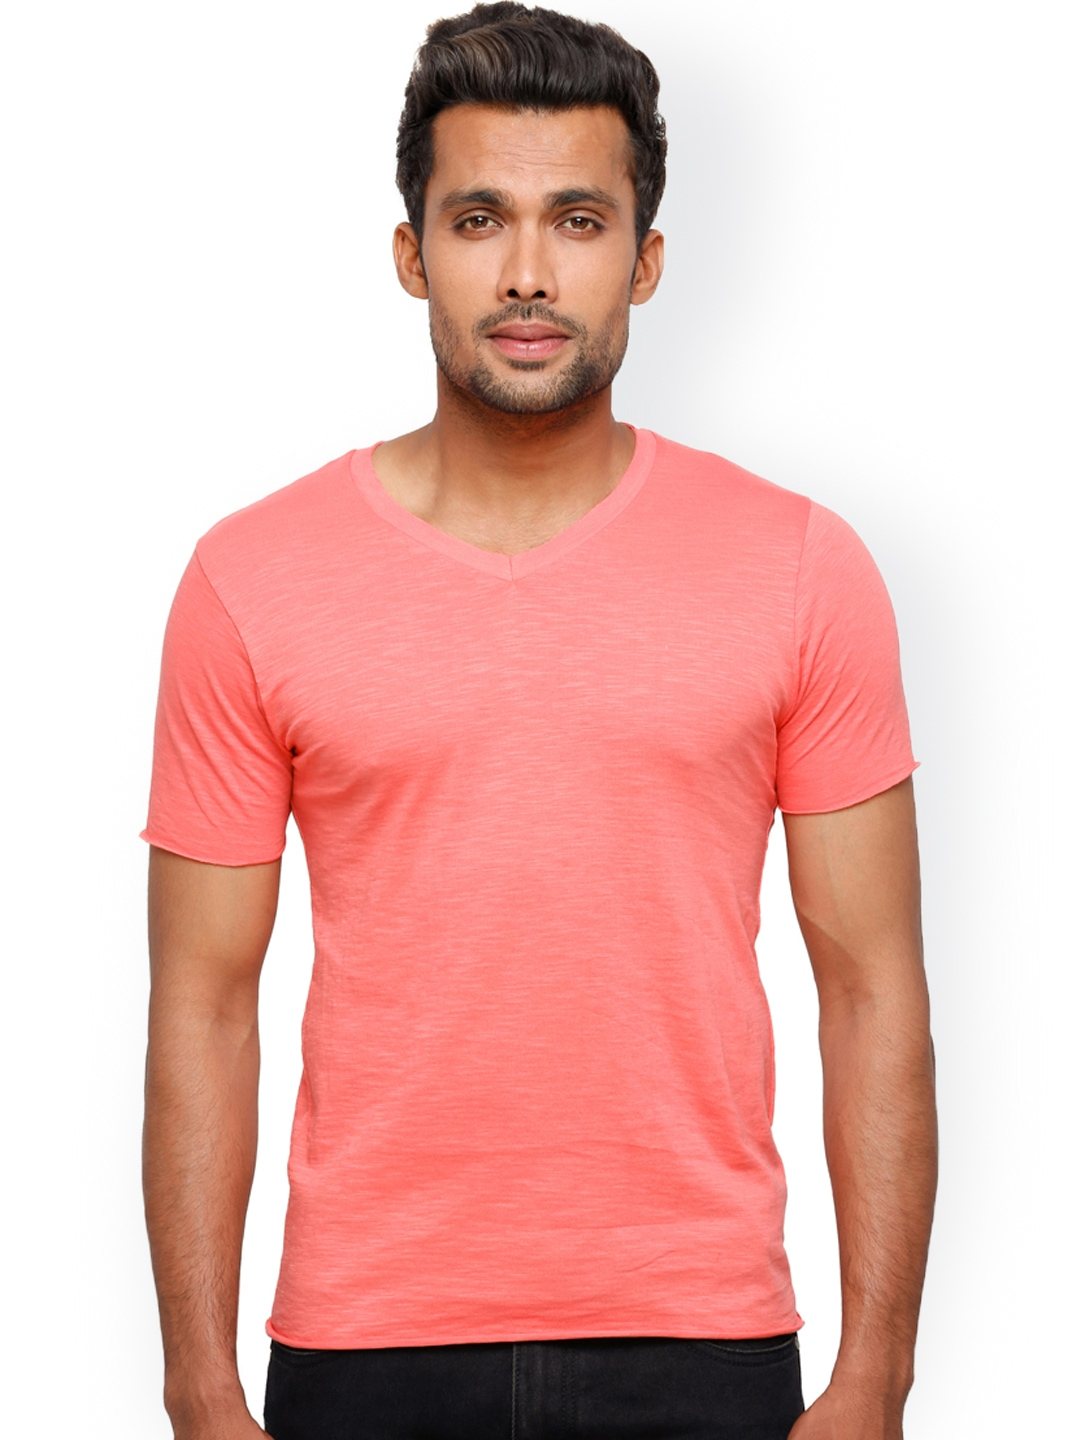 Myntra globus men coral pink t shirt 624411 buy myntra for Coral shirts for guys